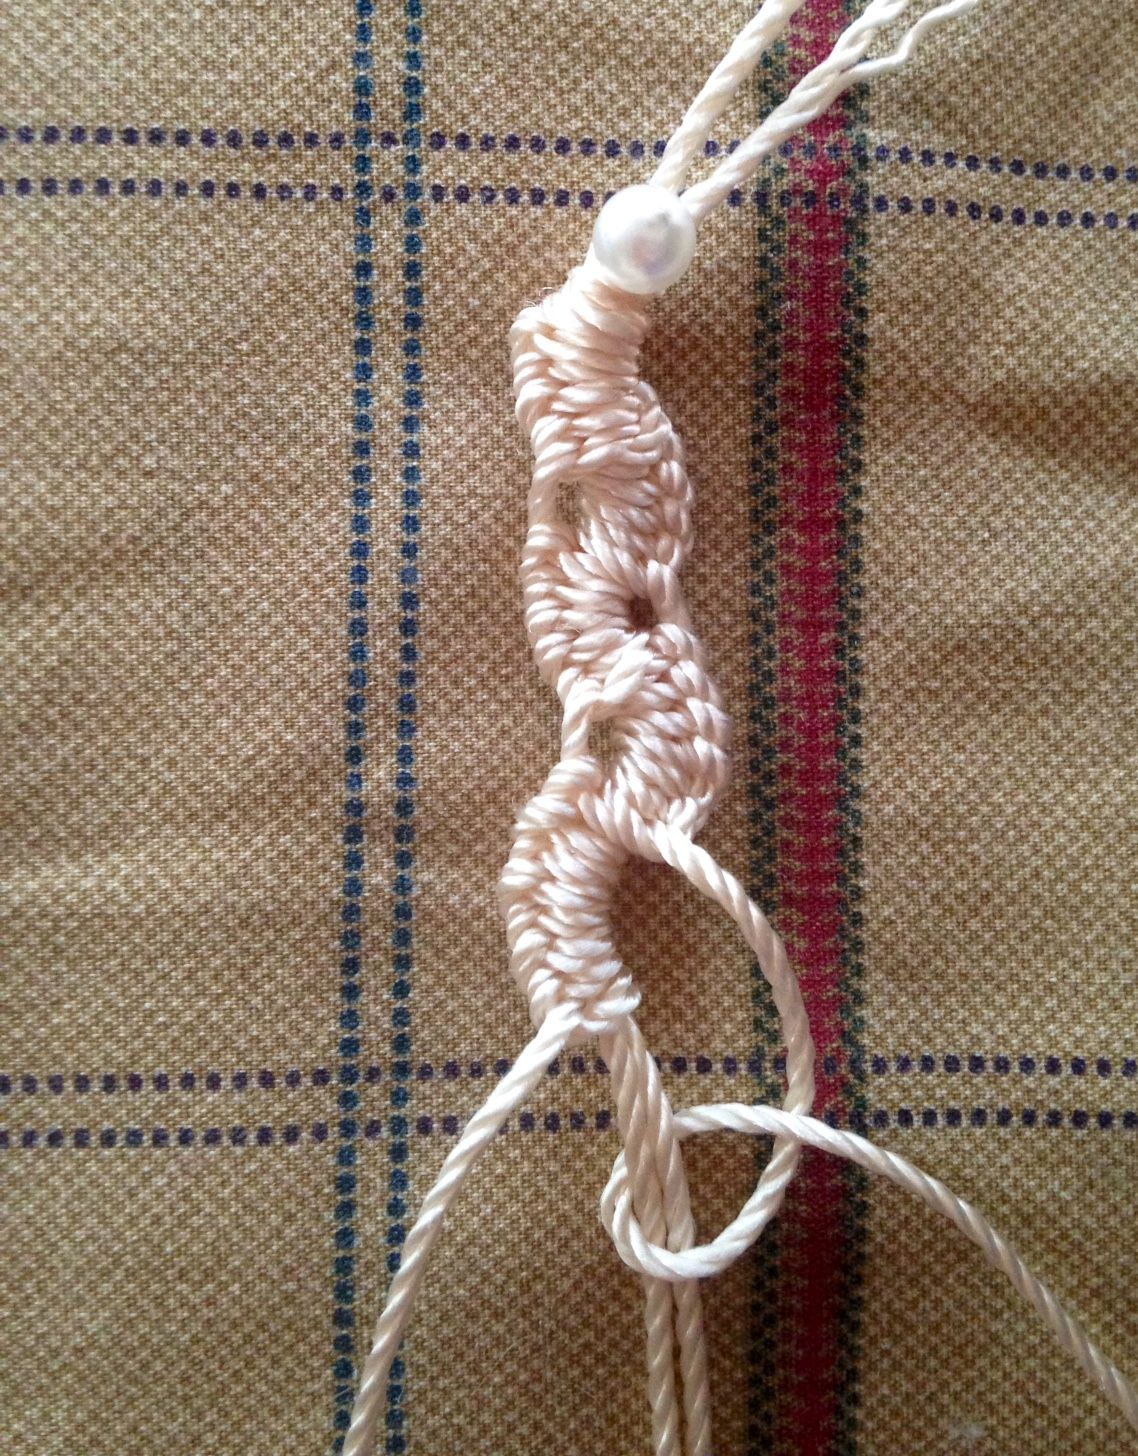 Macrame Two Sided Spiral Braid Plus Many Other Macrame